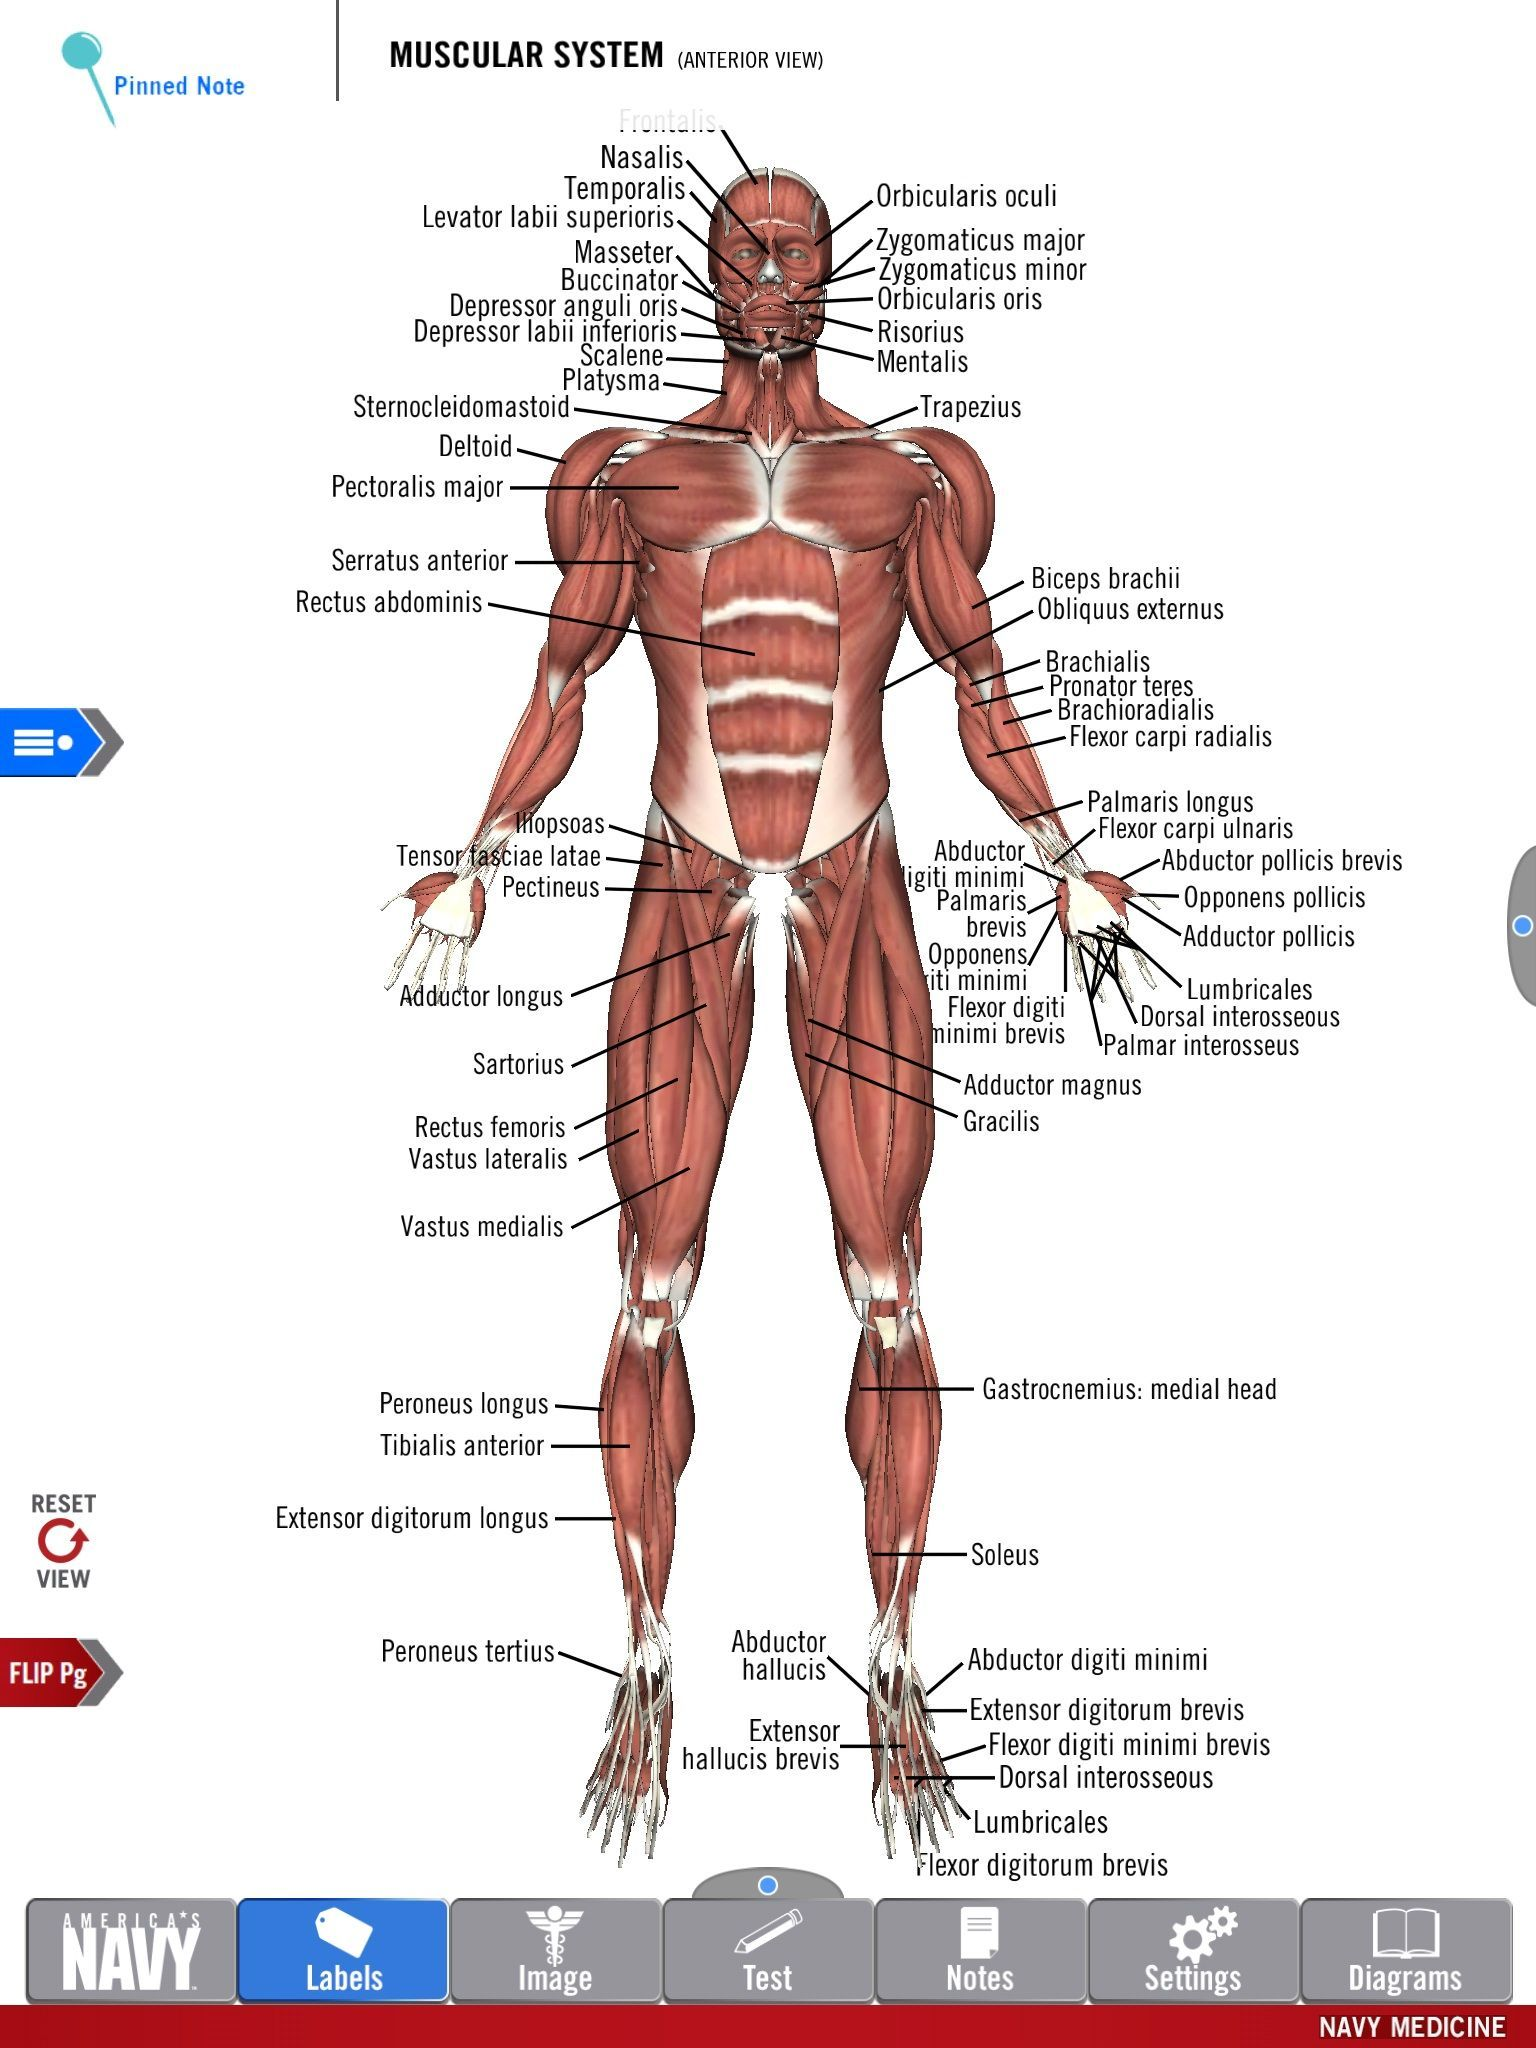 Diagram of the Muscular System from the free Anatomy Study Guide app ...